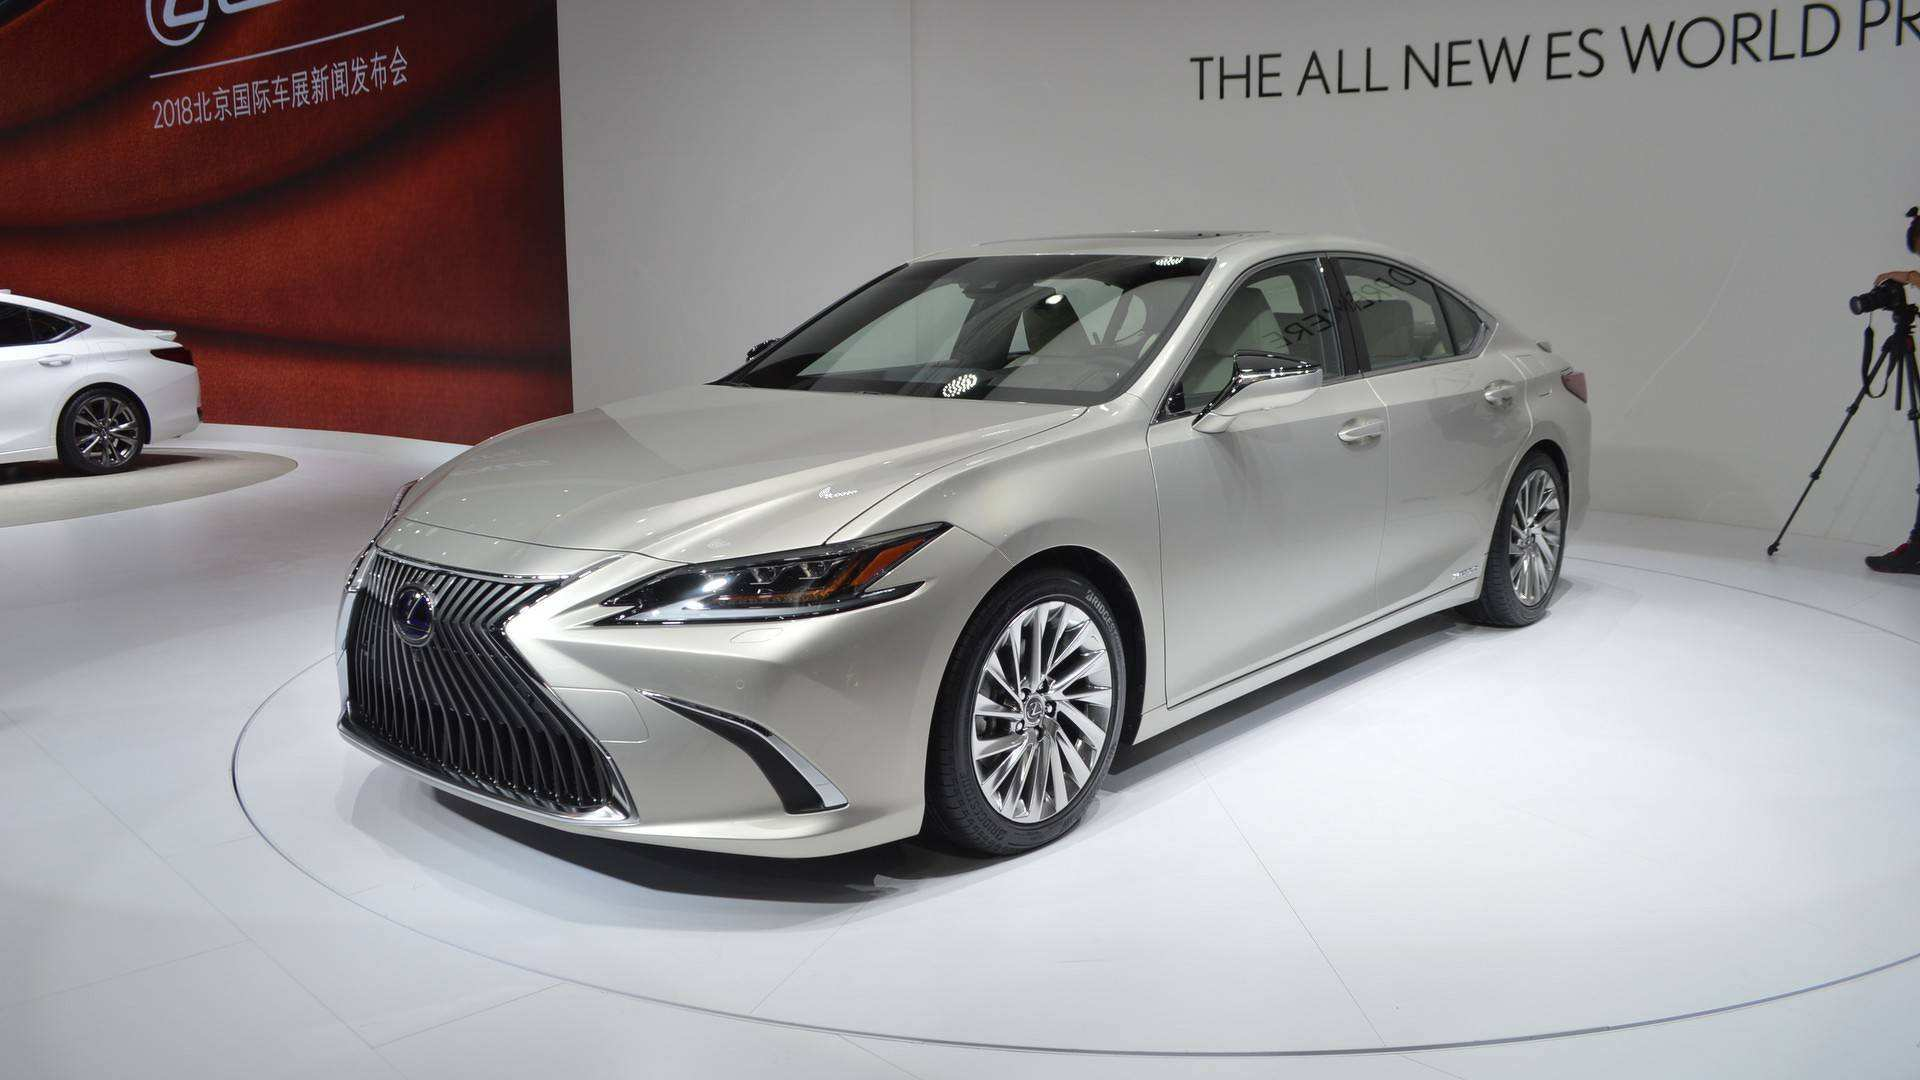 56 A Are The 2019 Lexus Out Yet Images